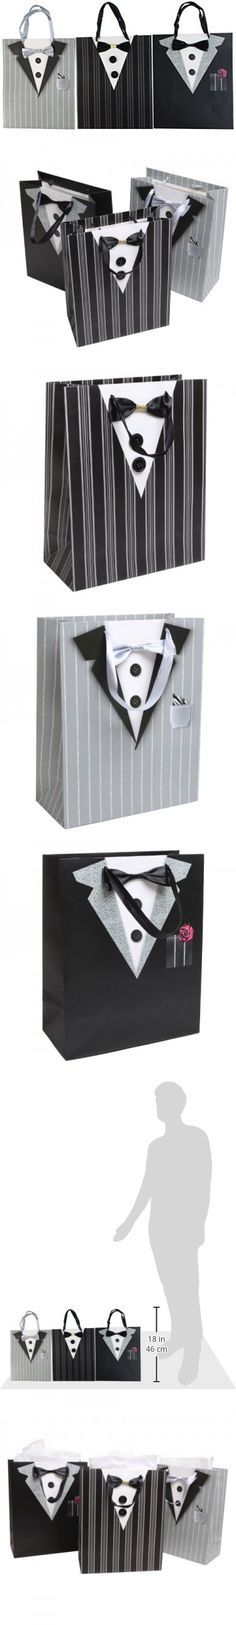 Dapper Wedding Groomsmen / Father's Birthday / Anniversary / Tuxedo Gift Bags and Tissues - (Set of 3)